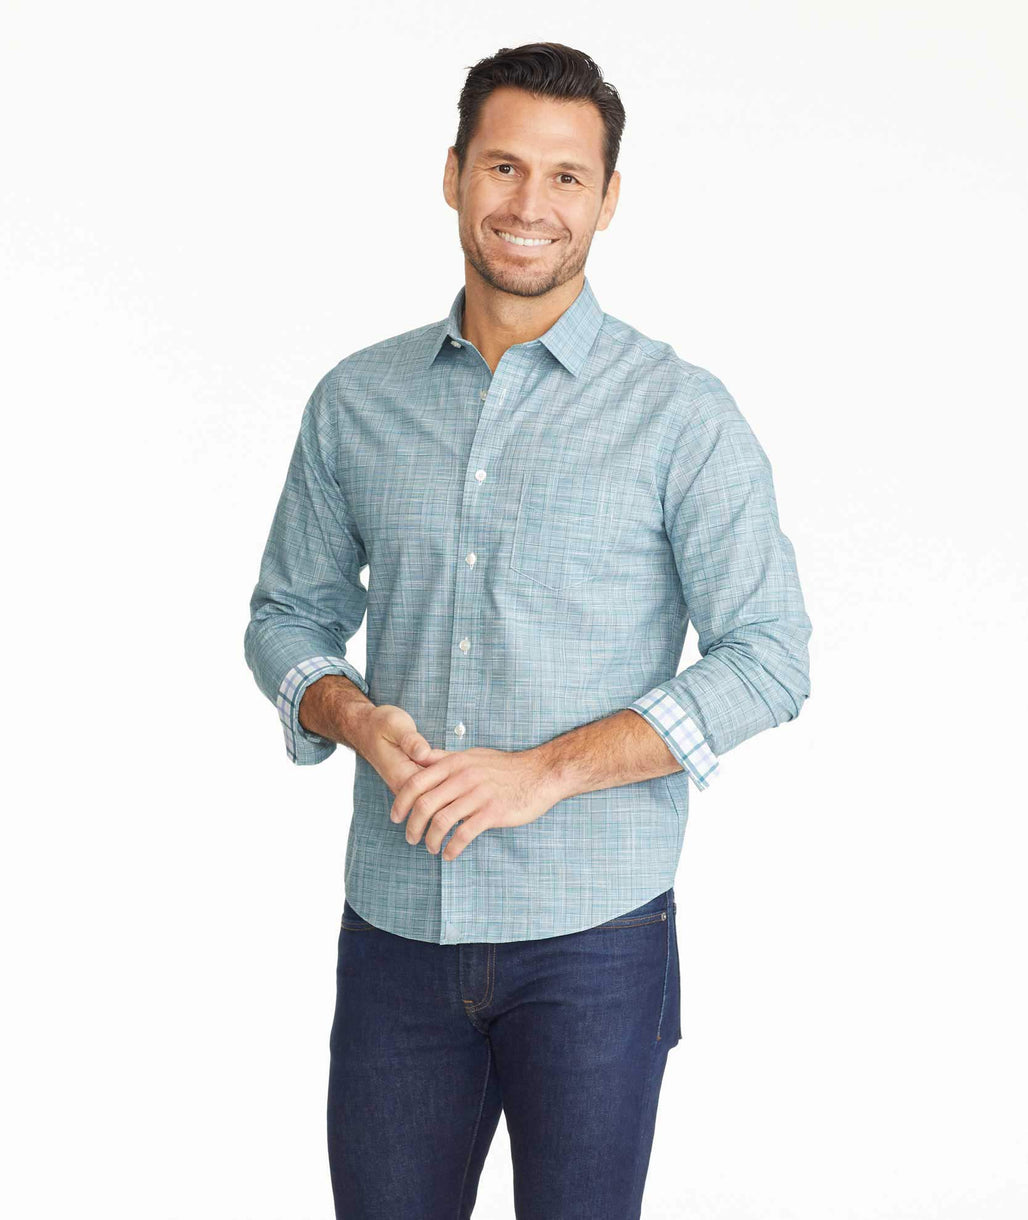 Model wearing a Wrinkle-Free Avellino Shirt